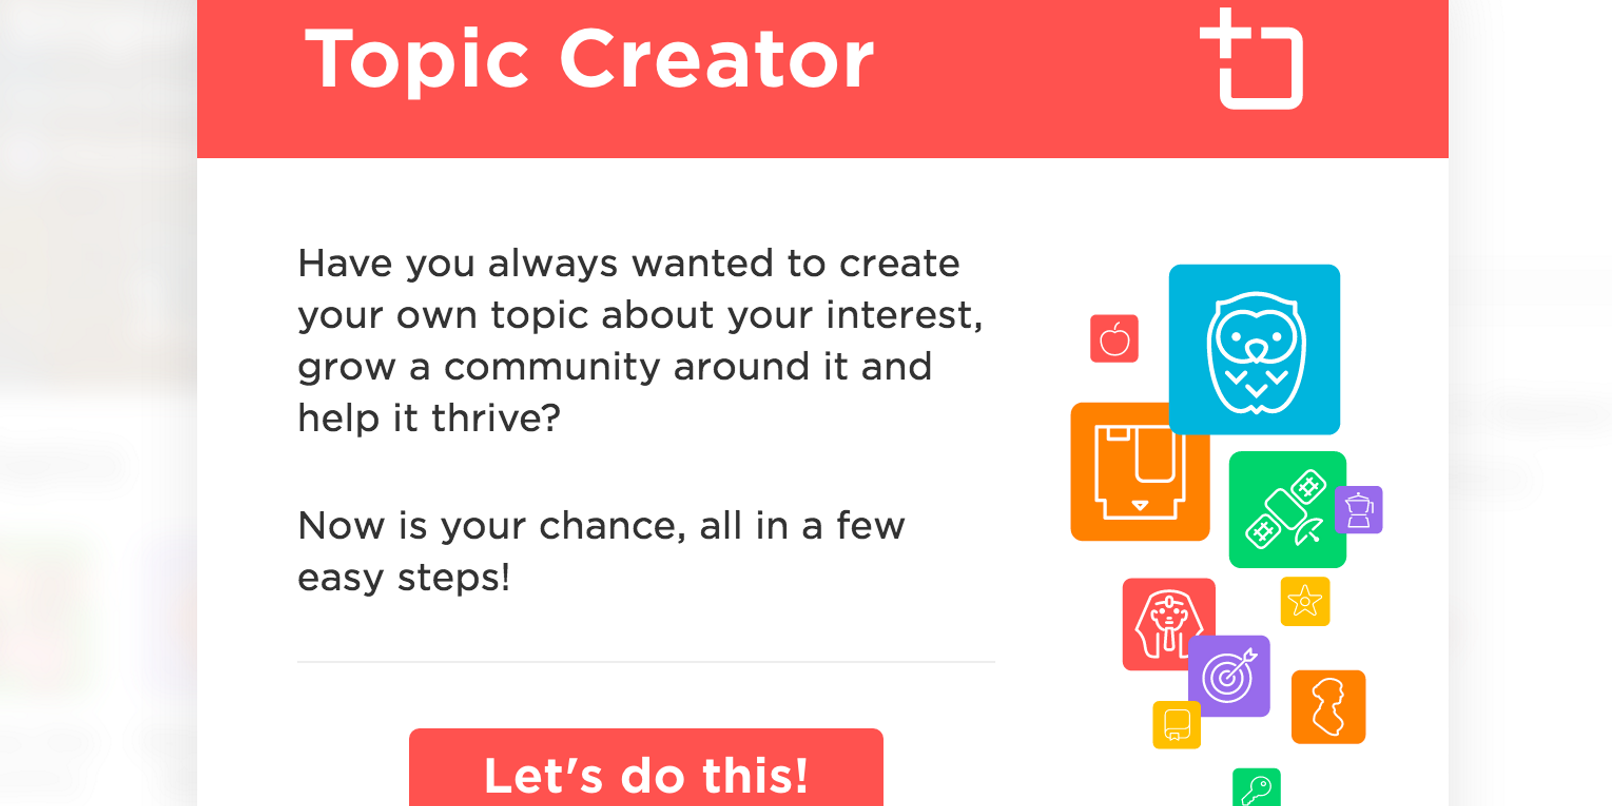 My QuizUp' lets you set your own trivia categories and questions